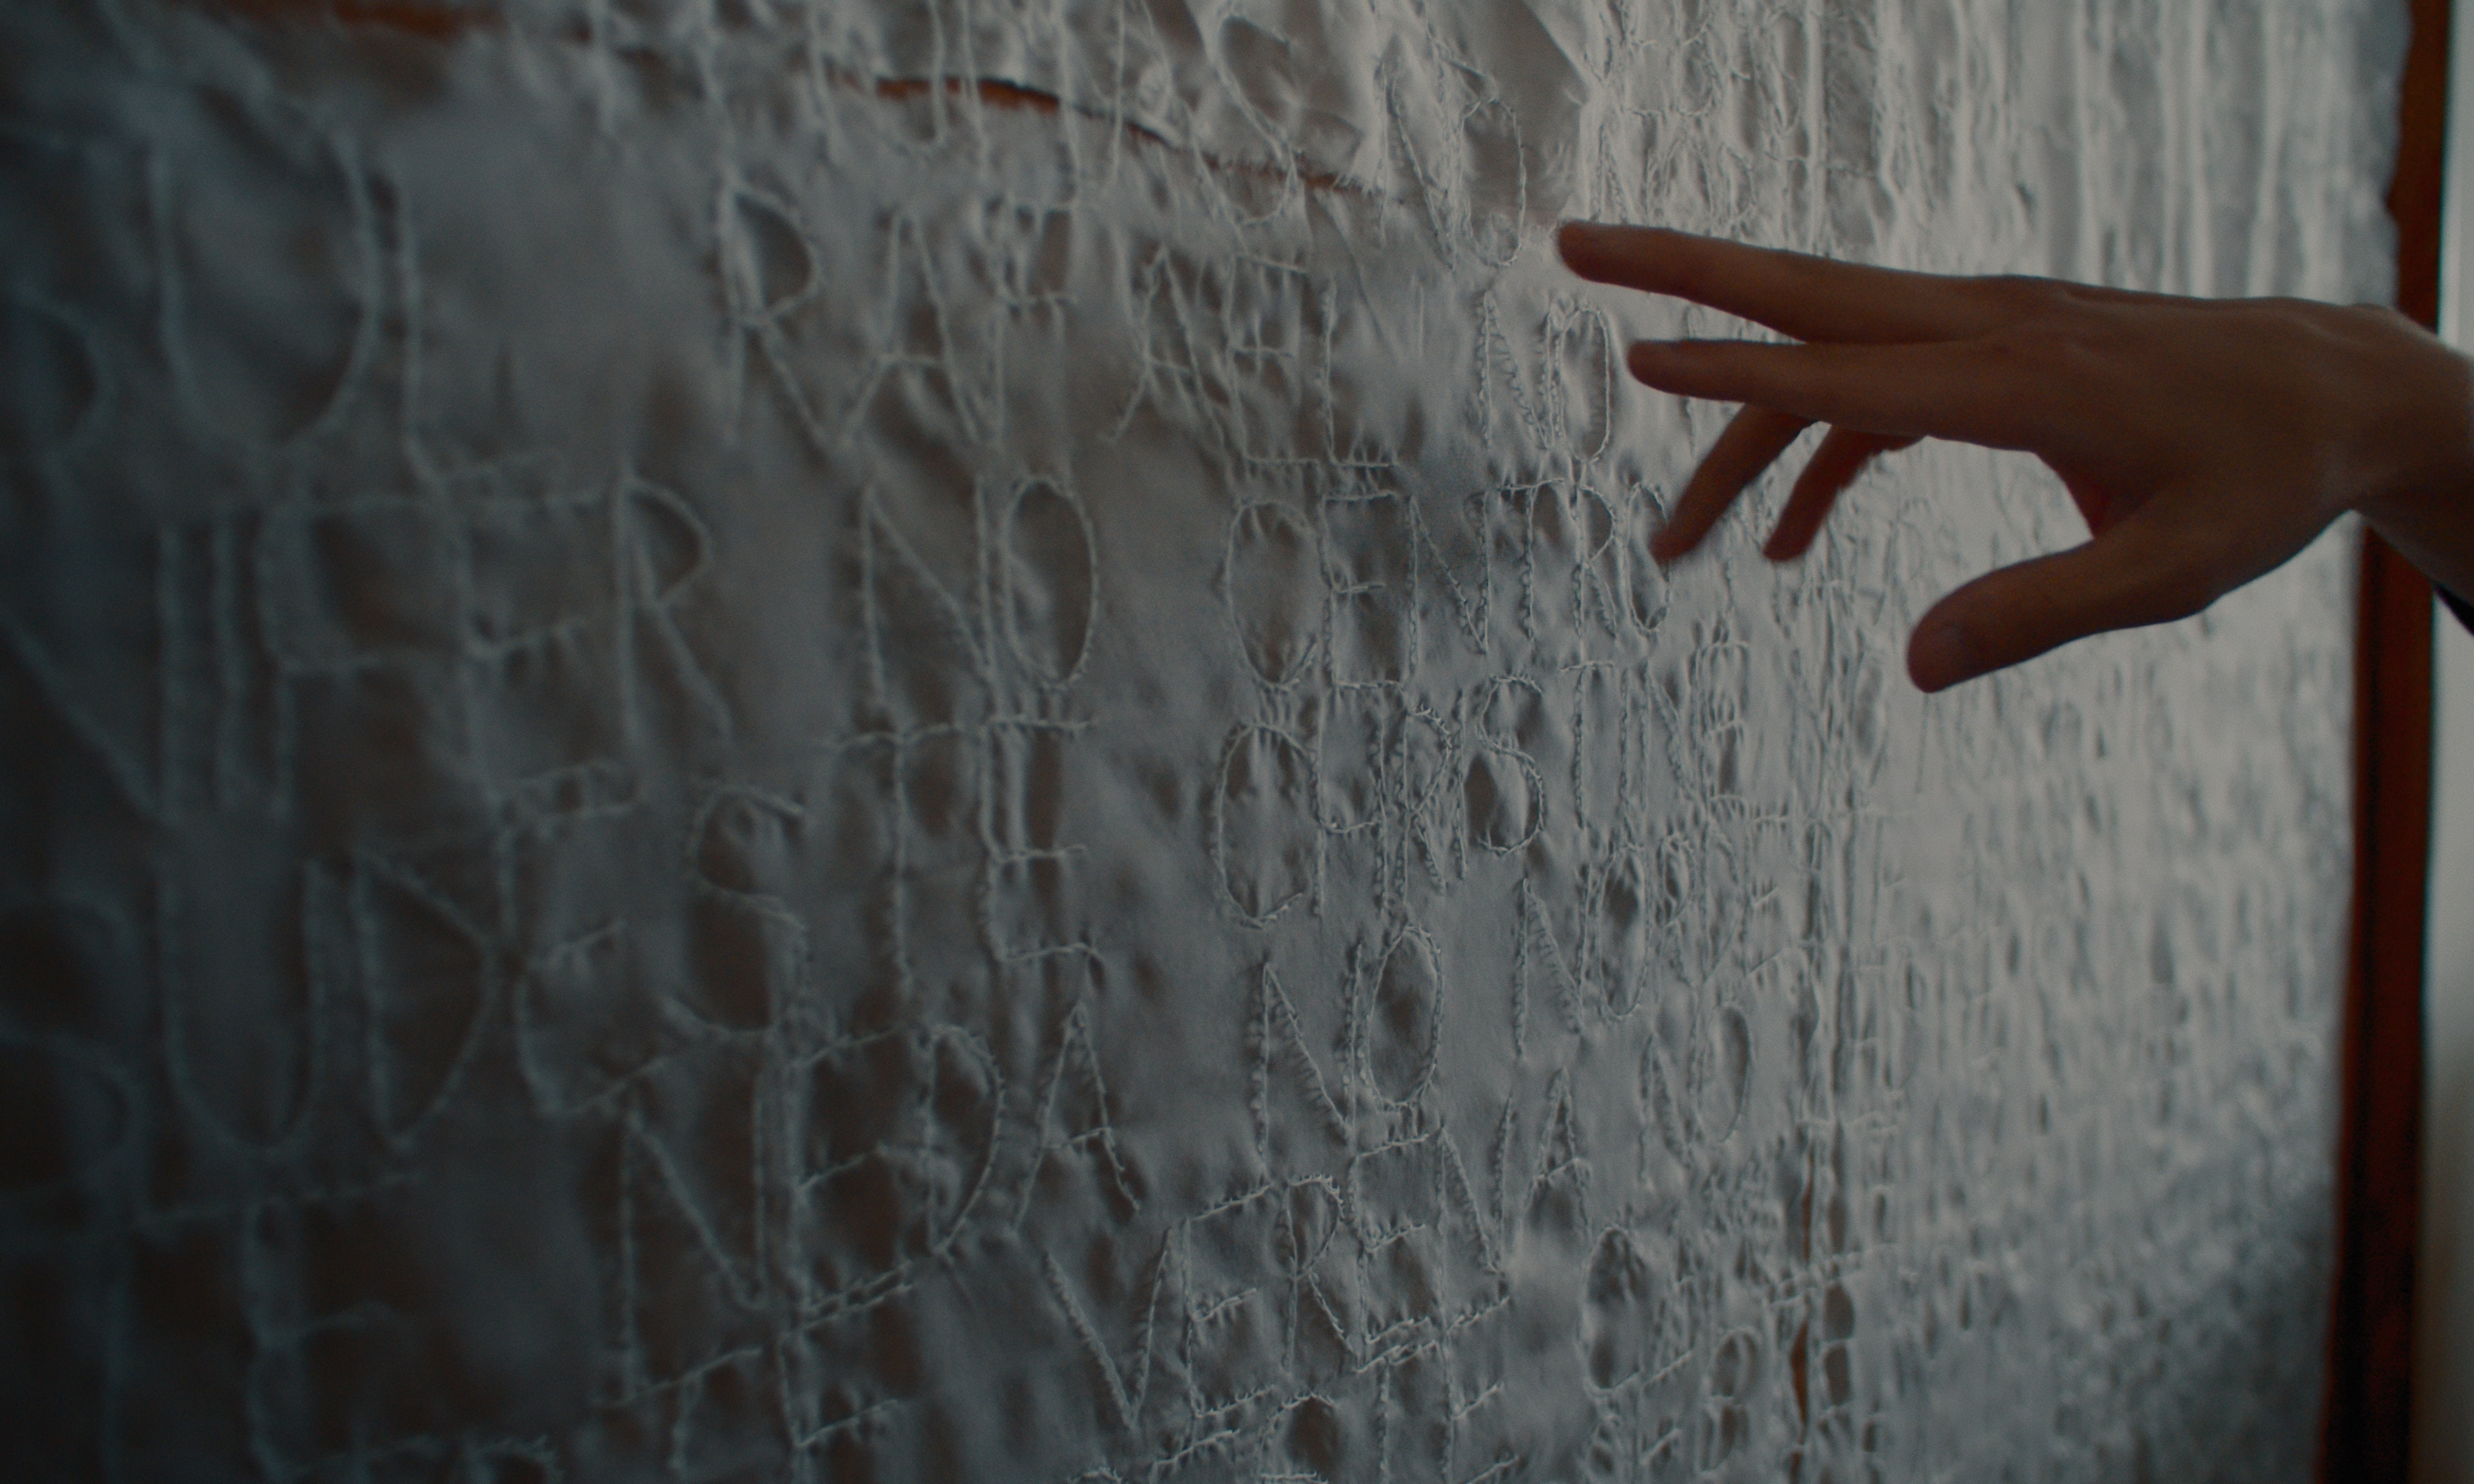 A hand pointing at an textile artwort by Lucas Odahara.